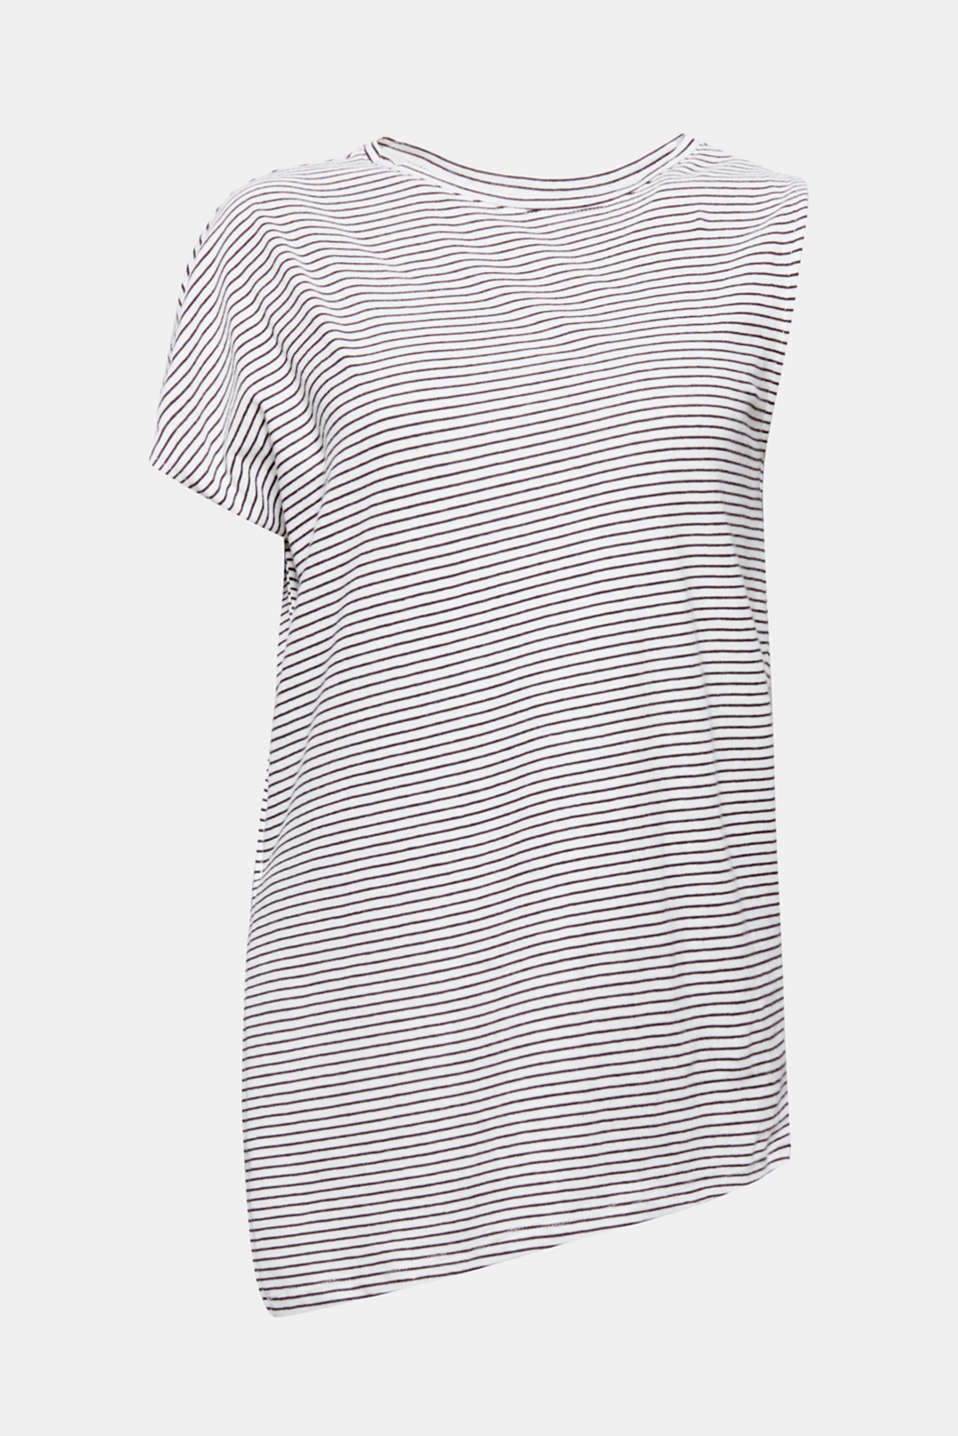 The one-shoulder design, fine all-over stripes and asymmetric hem make this soft cotton top a trend piece!